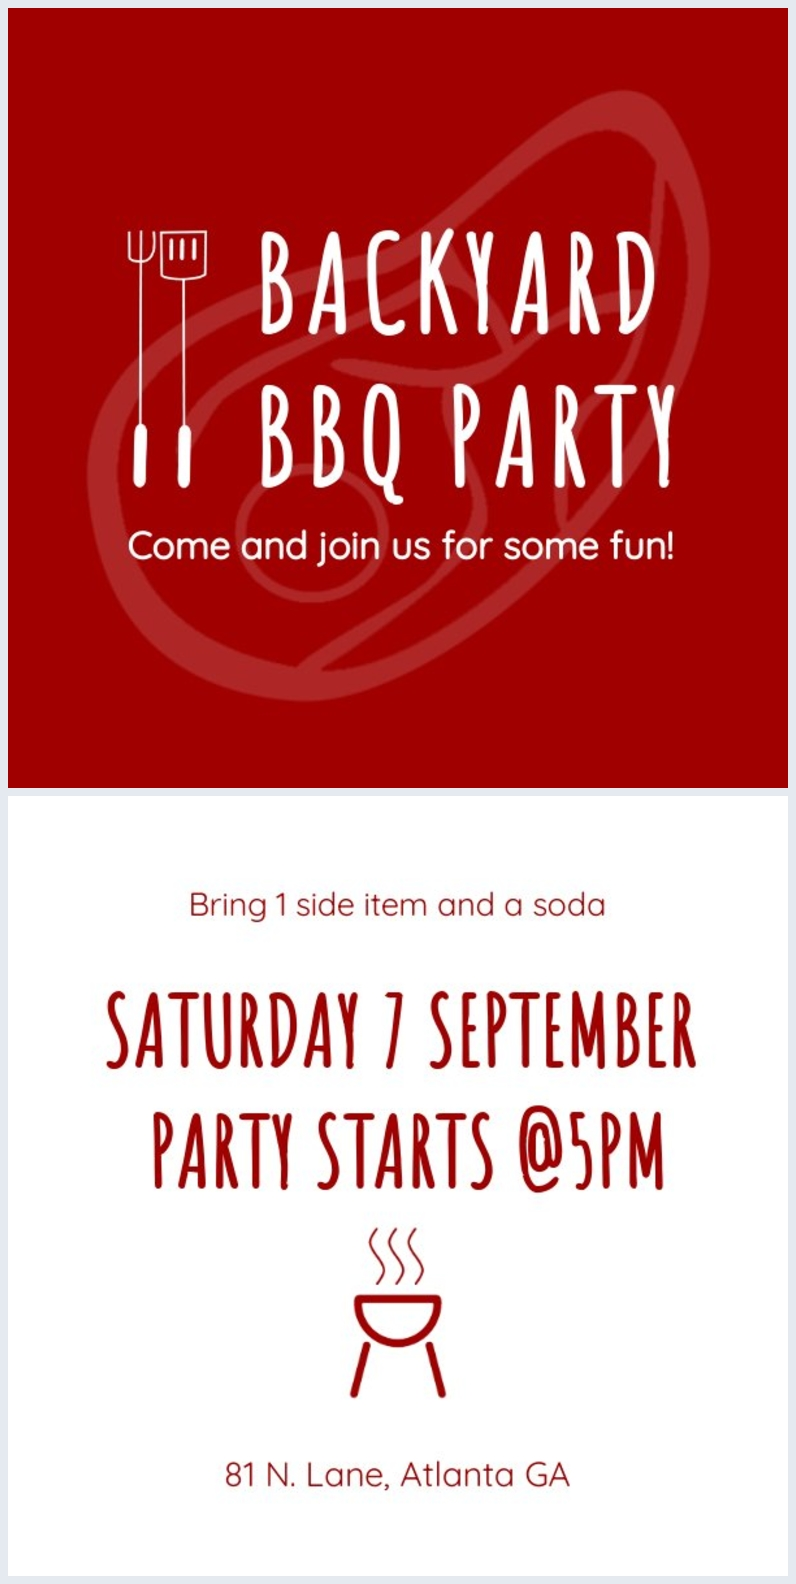 Free backyard barbecue flyer layout